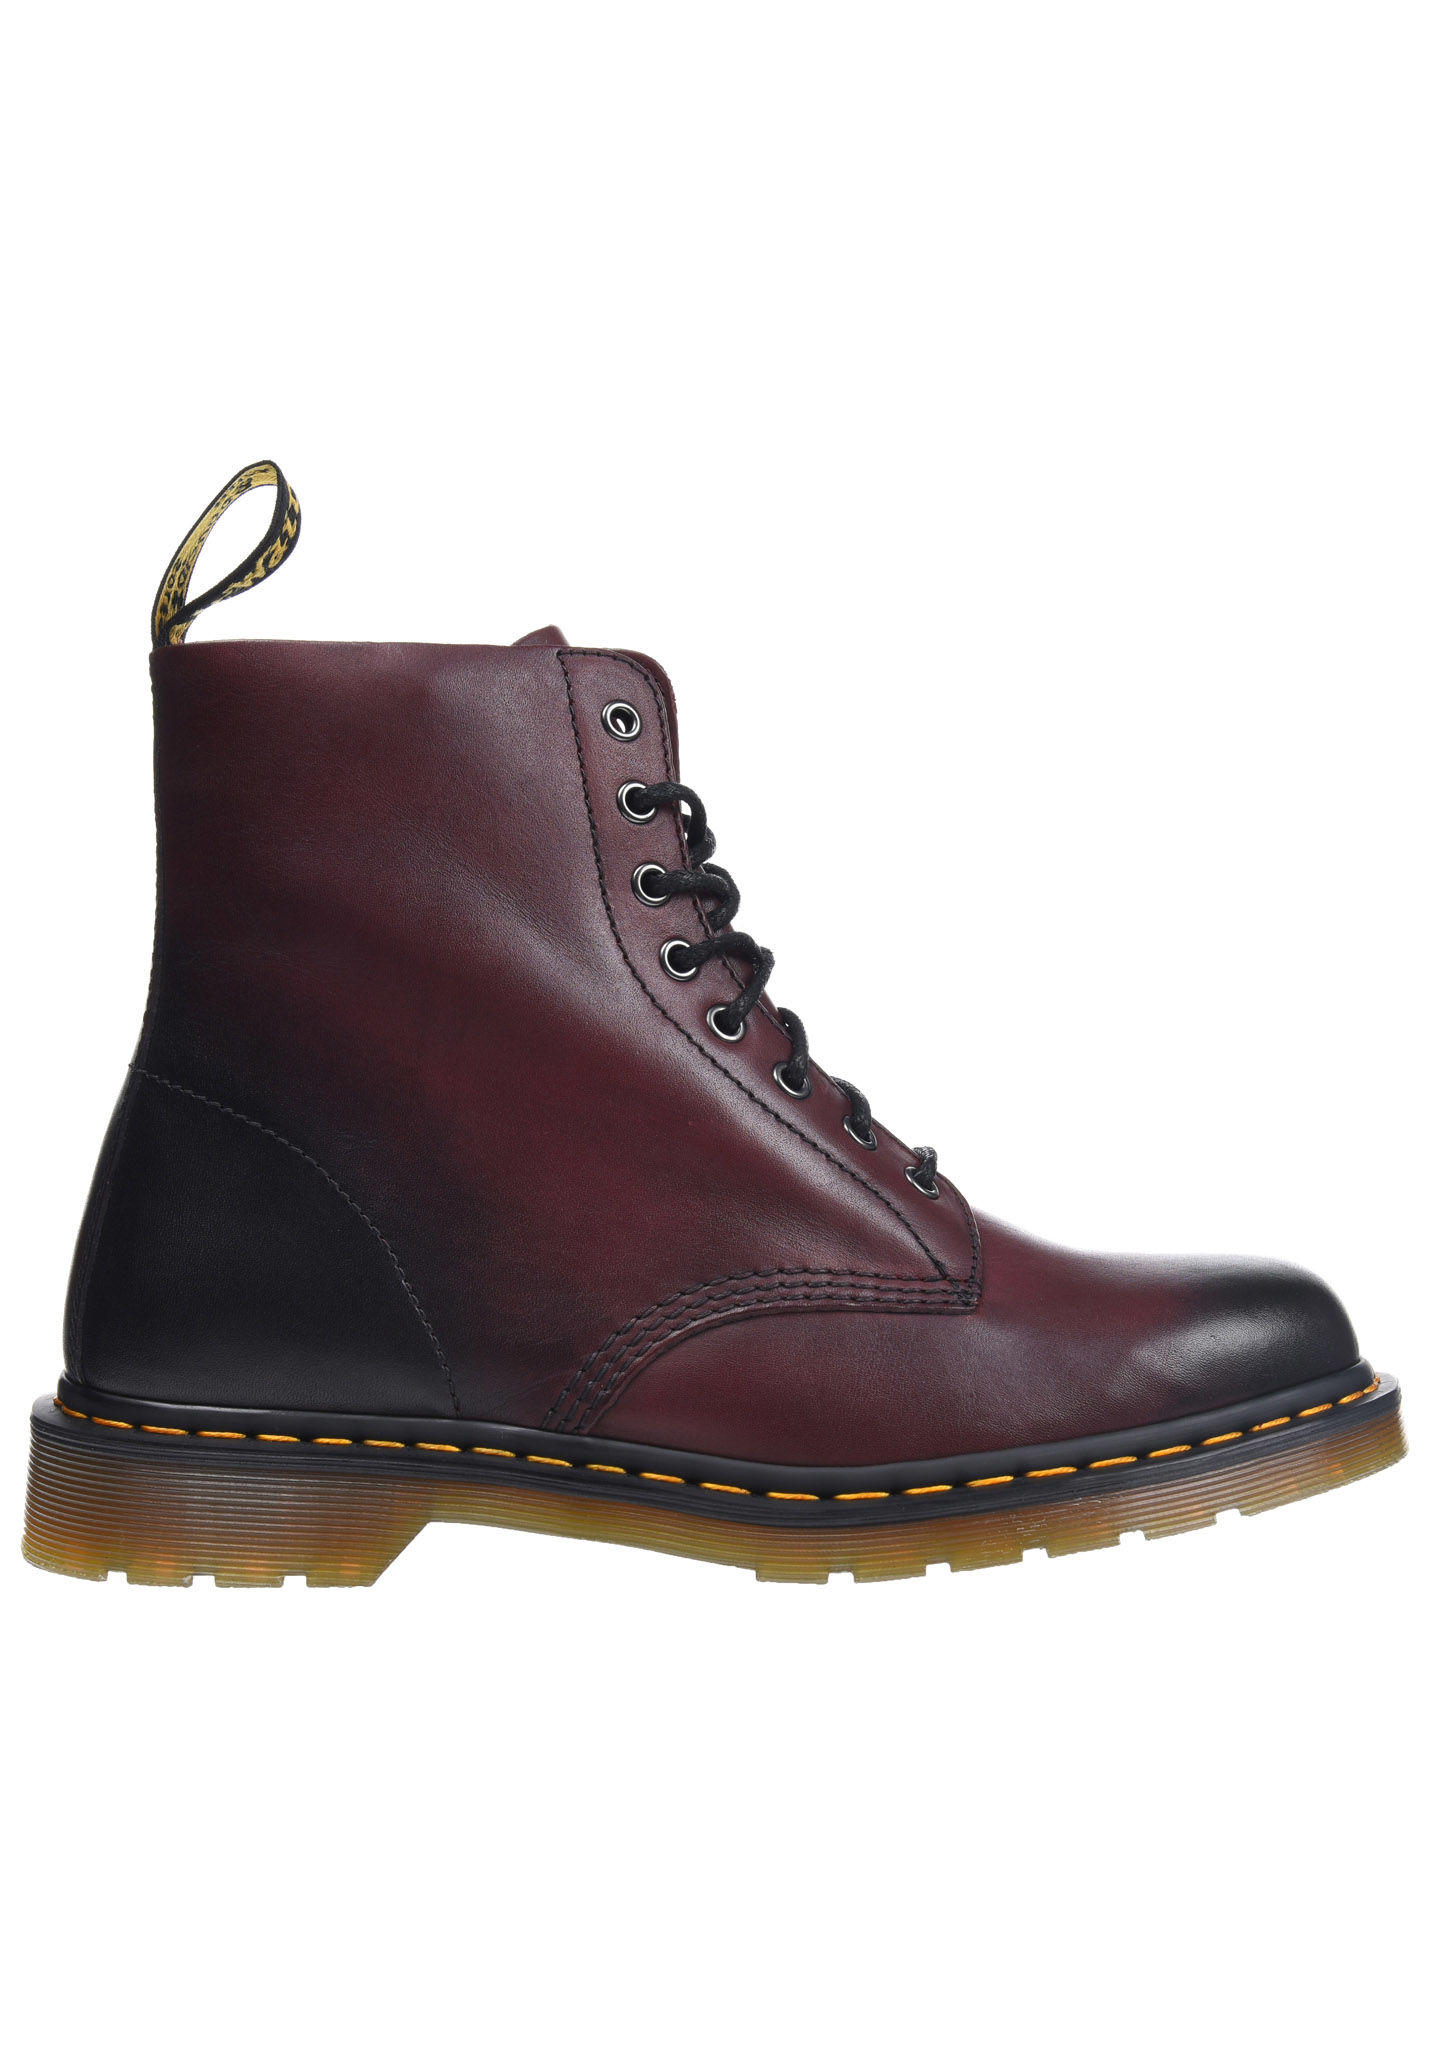 43a6c1ede4cda Dr. Martens Pascal Antique Temperly - Stiefel - Rot